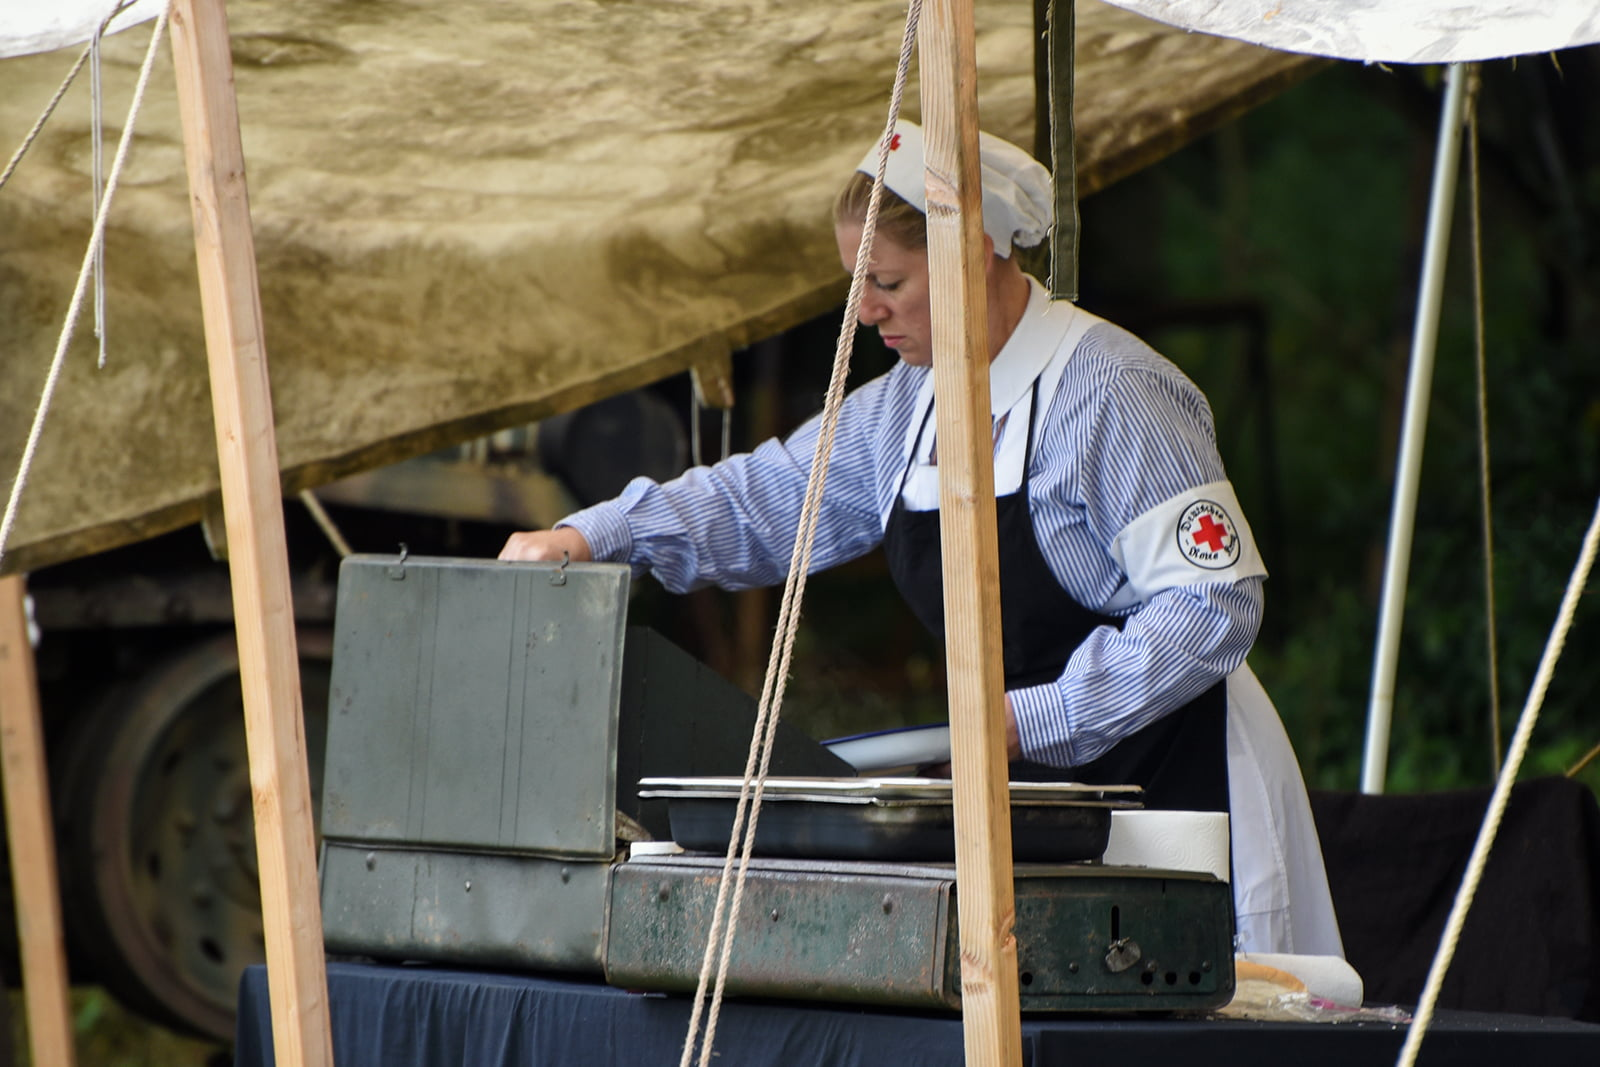 War time nurse re-enactor at Capel Military Show